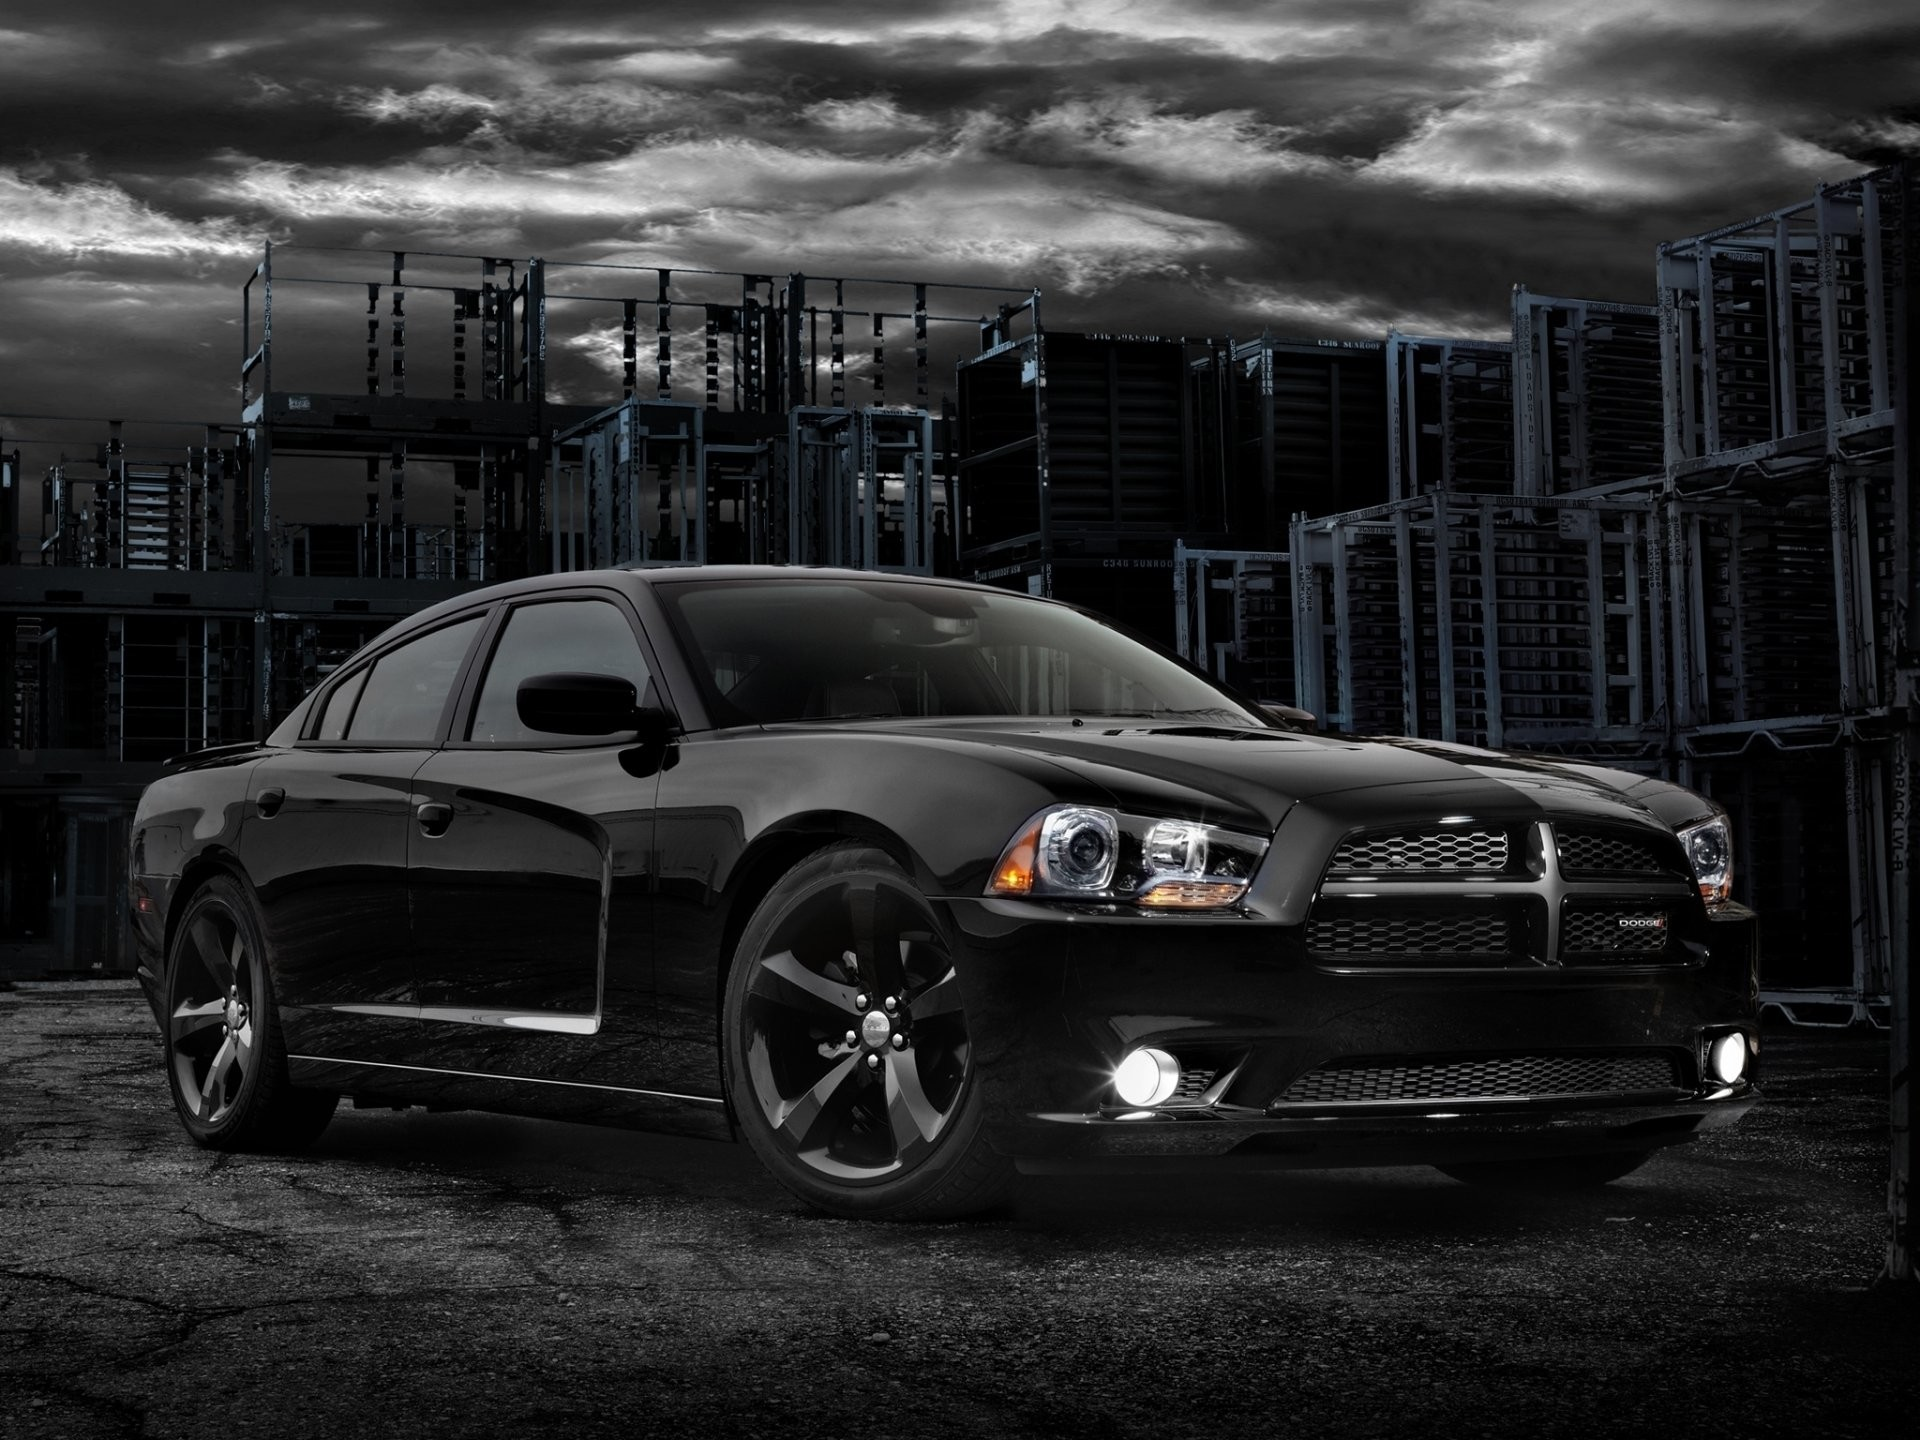 Vehicles – Dodge Charger Wallpaper